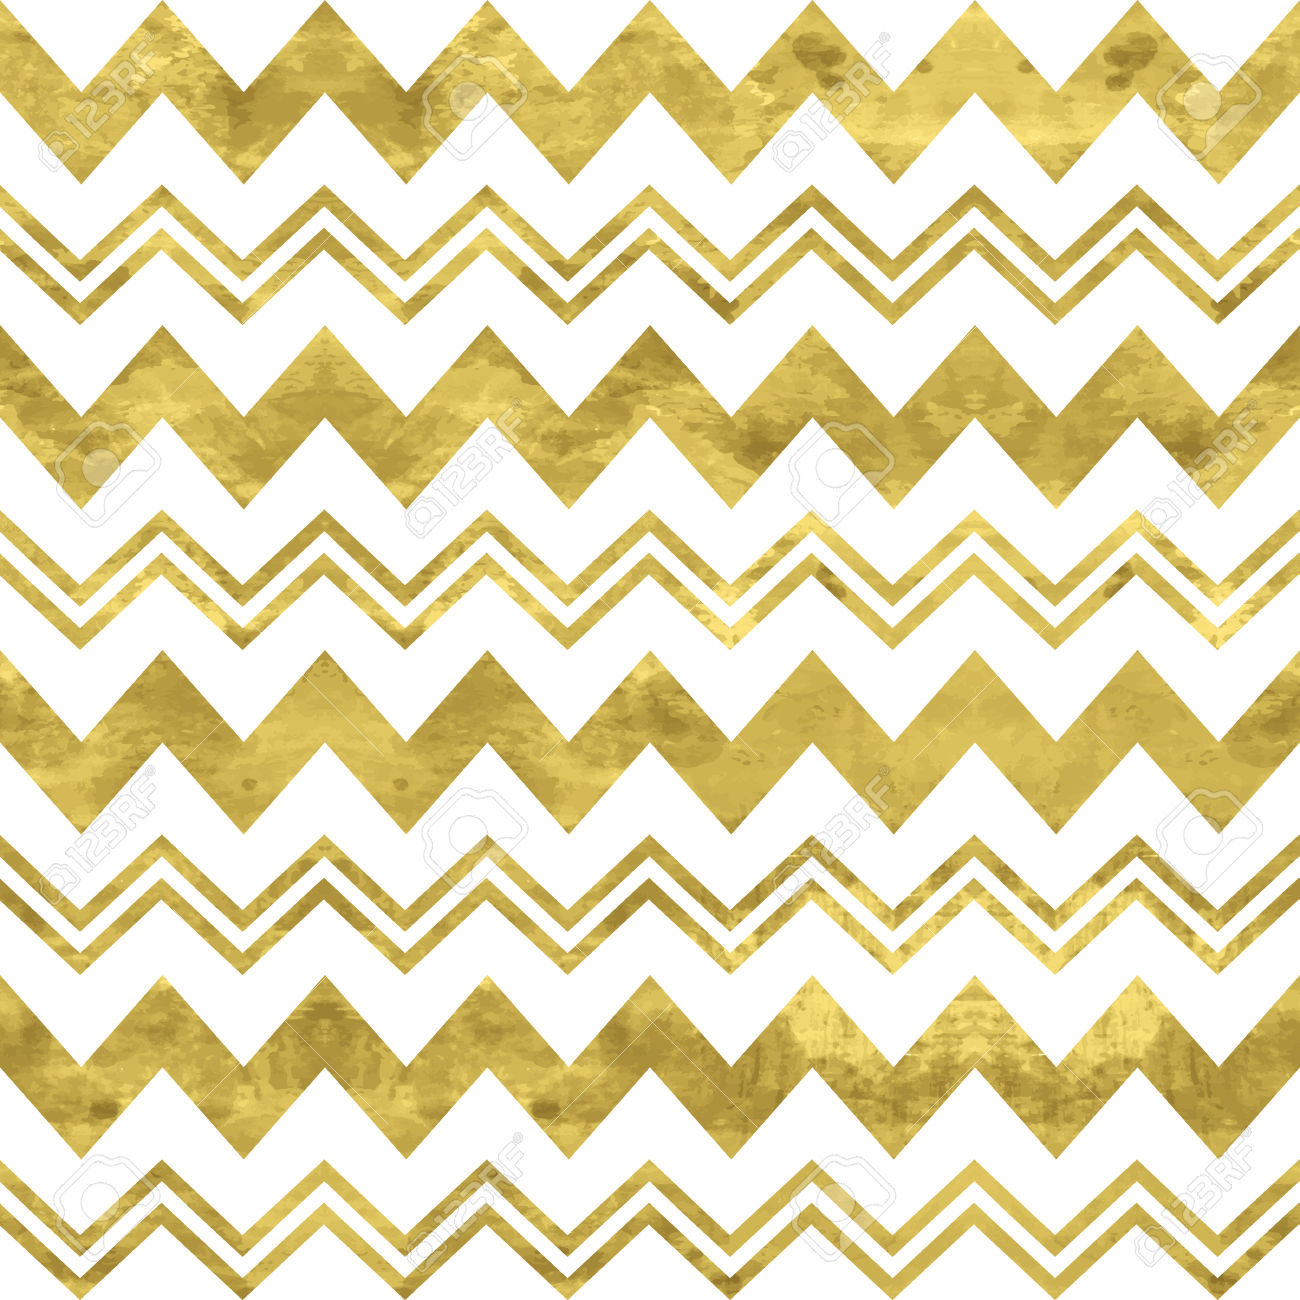 White Rabbit Costume Tail Related Keywords & Suggestions ... Gold And Navy Chevron Wallpaper